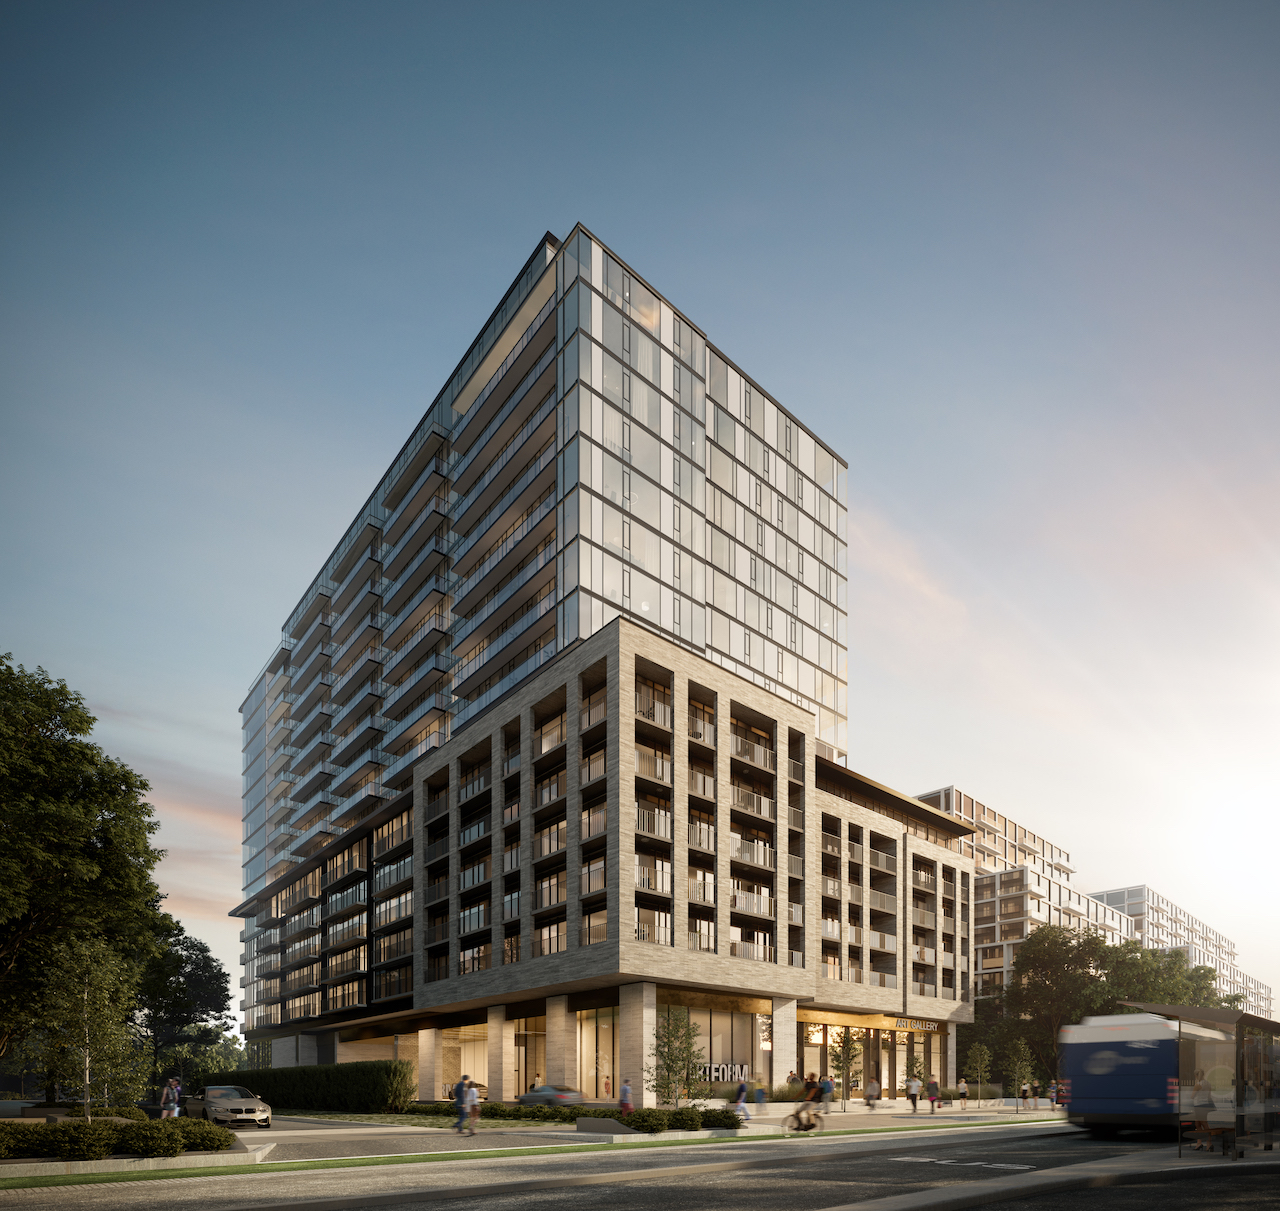 Rendering of ARTFORM Condos exterior corner with BRT.